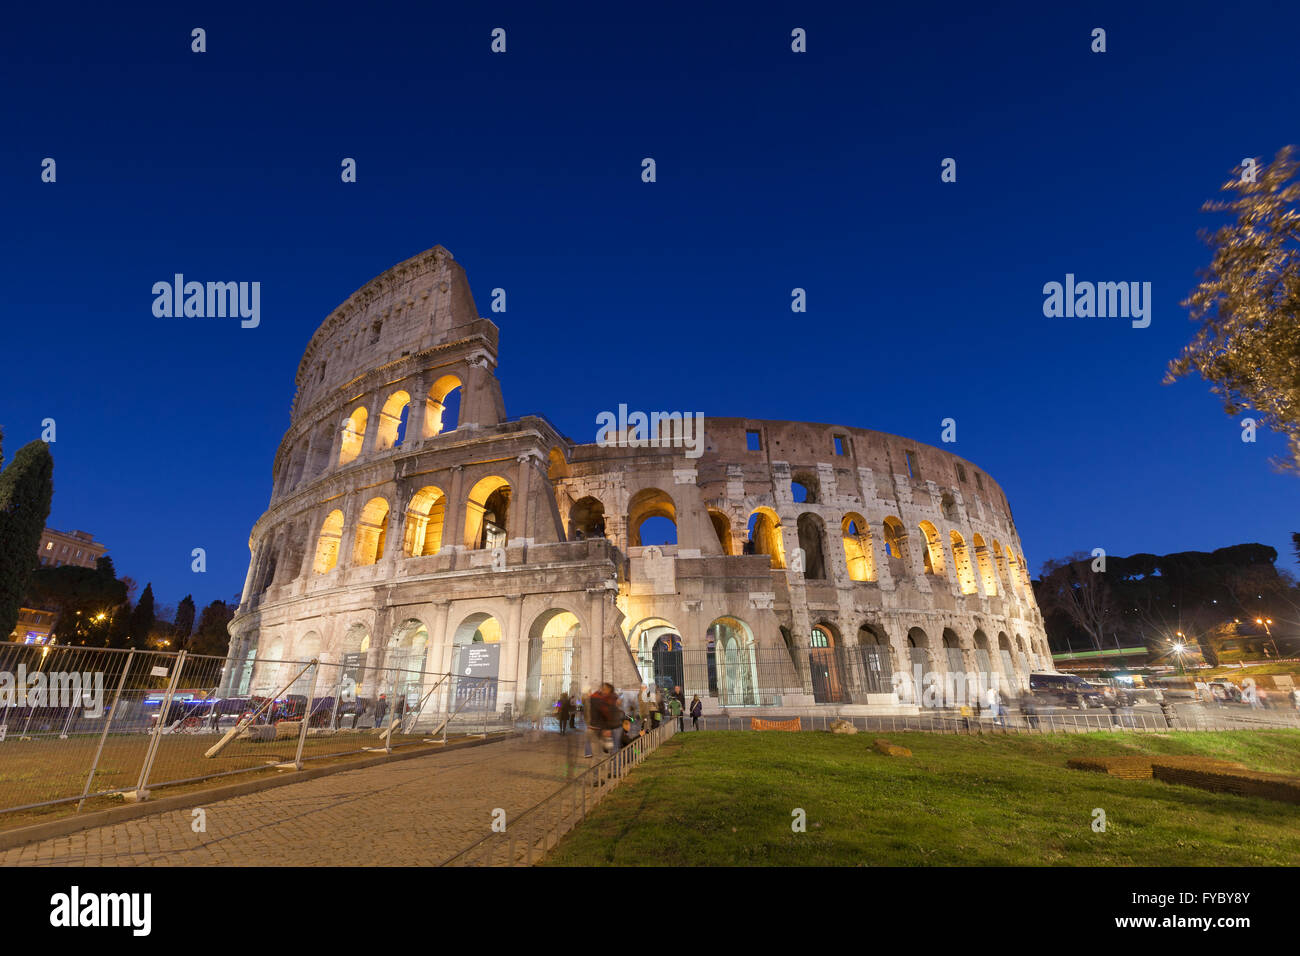 Colosseum at night, Rome, Italy - Stock Image